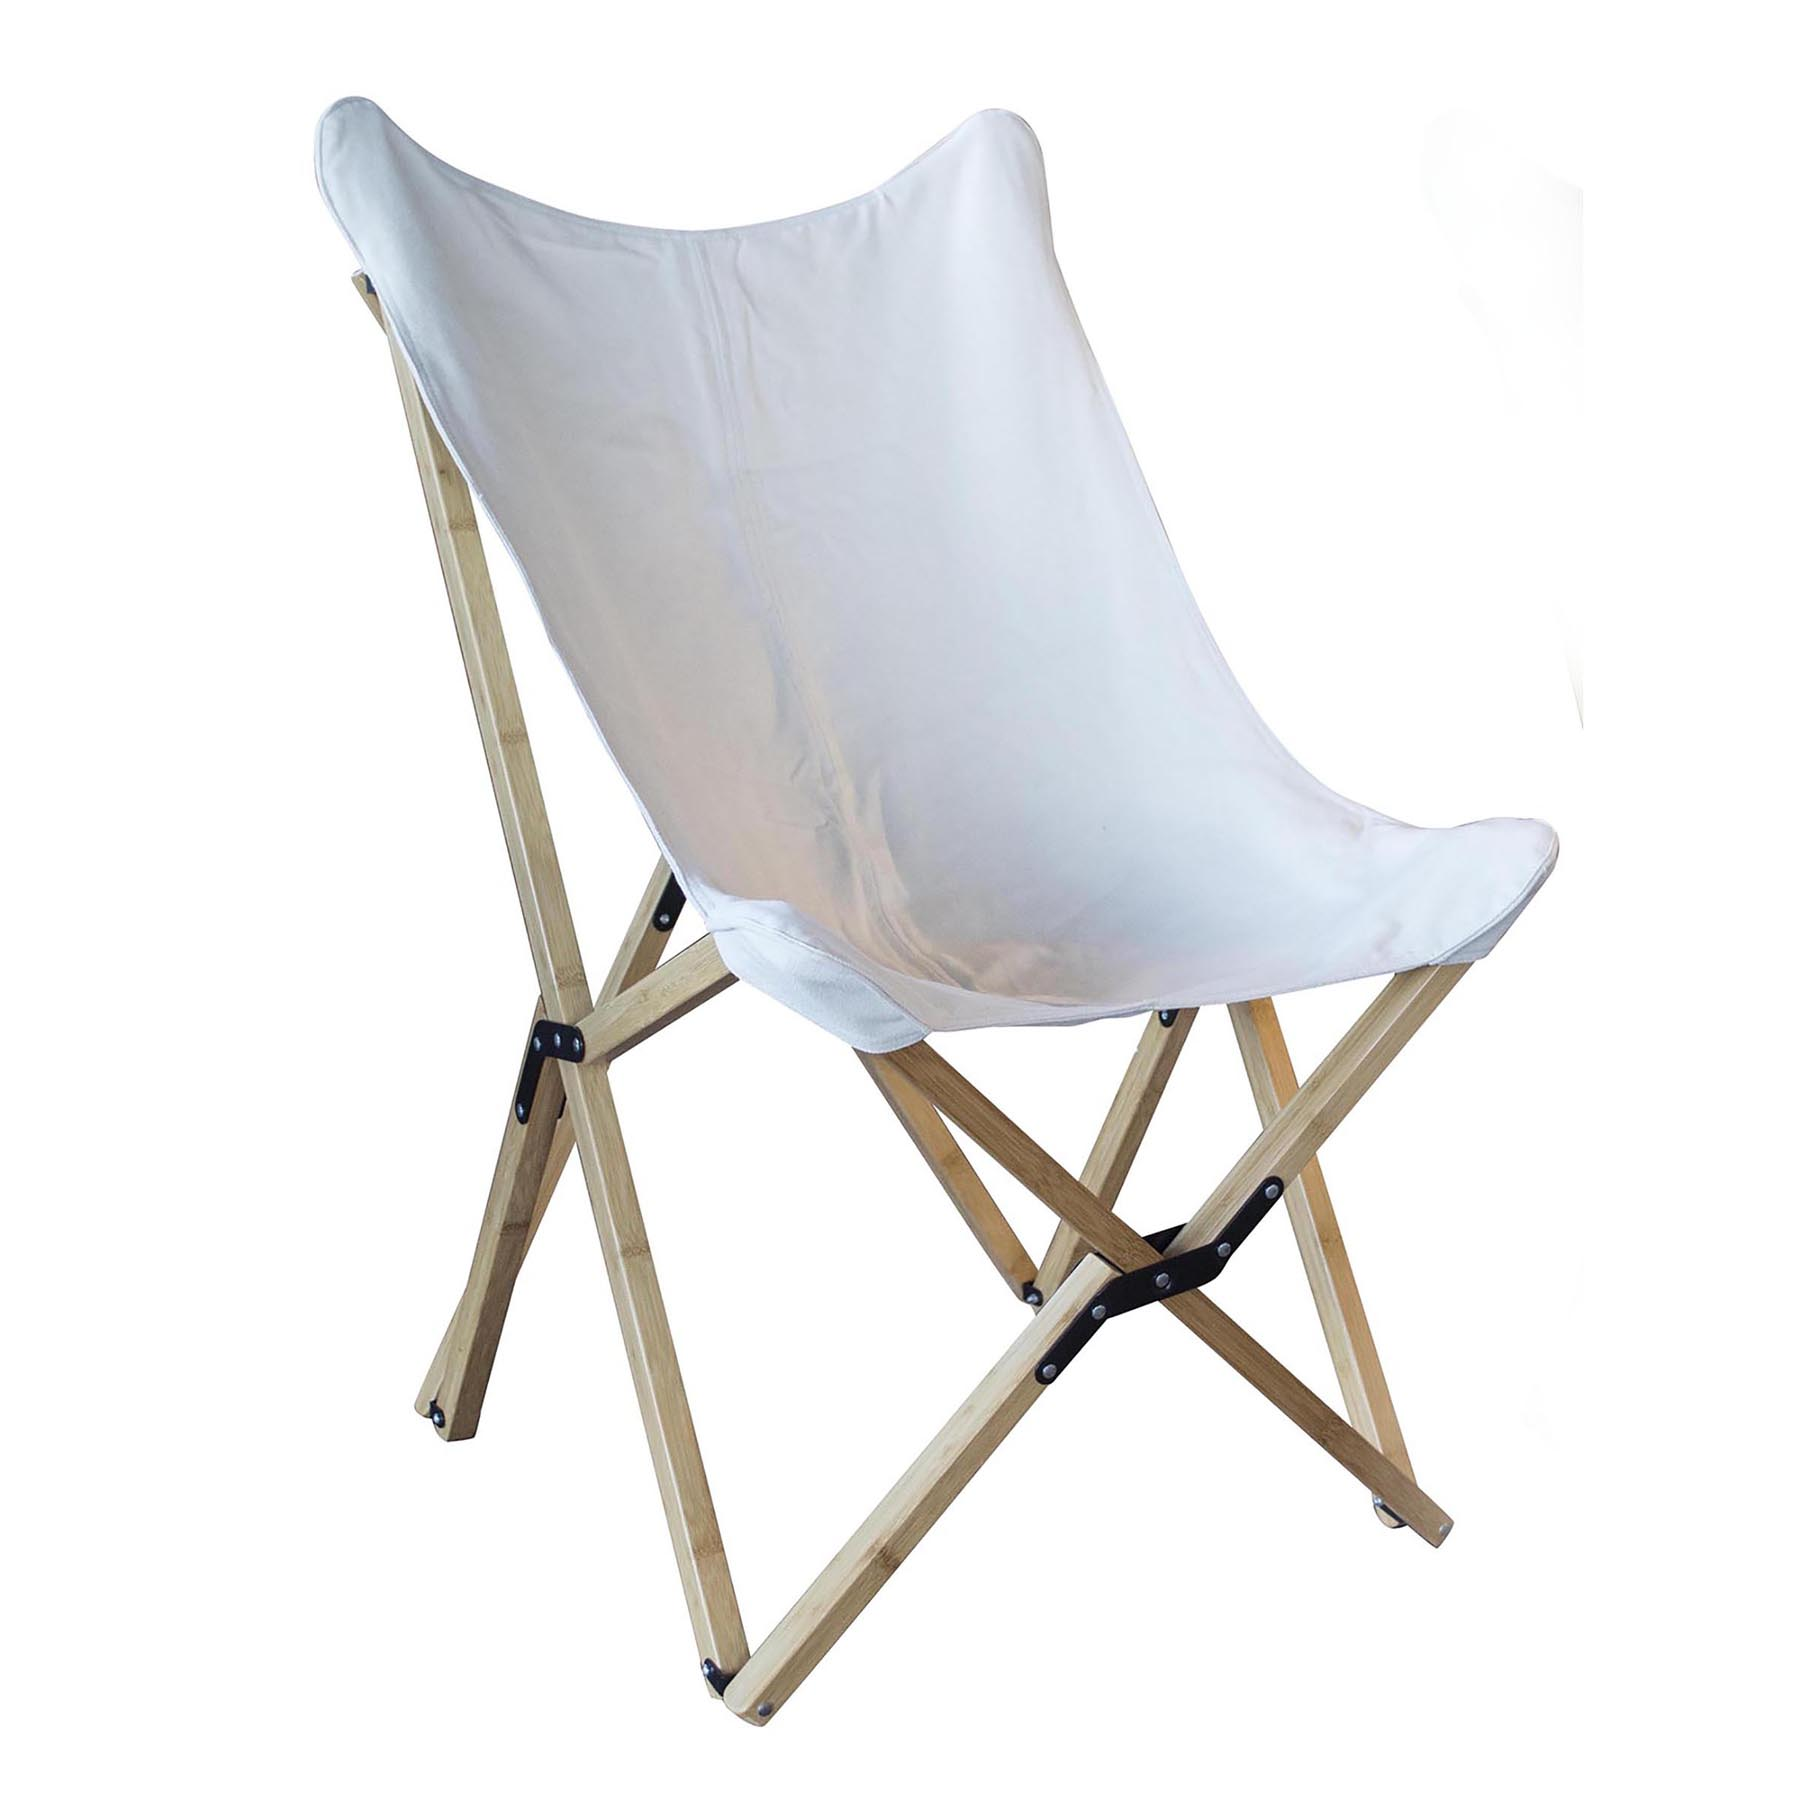 (Open Box) Canvas and Bamboo Butterfly Chair - White